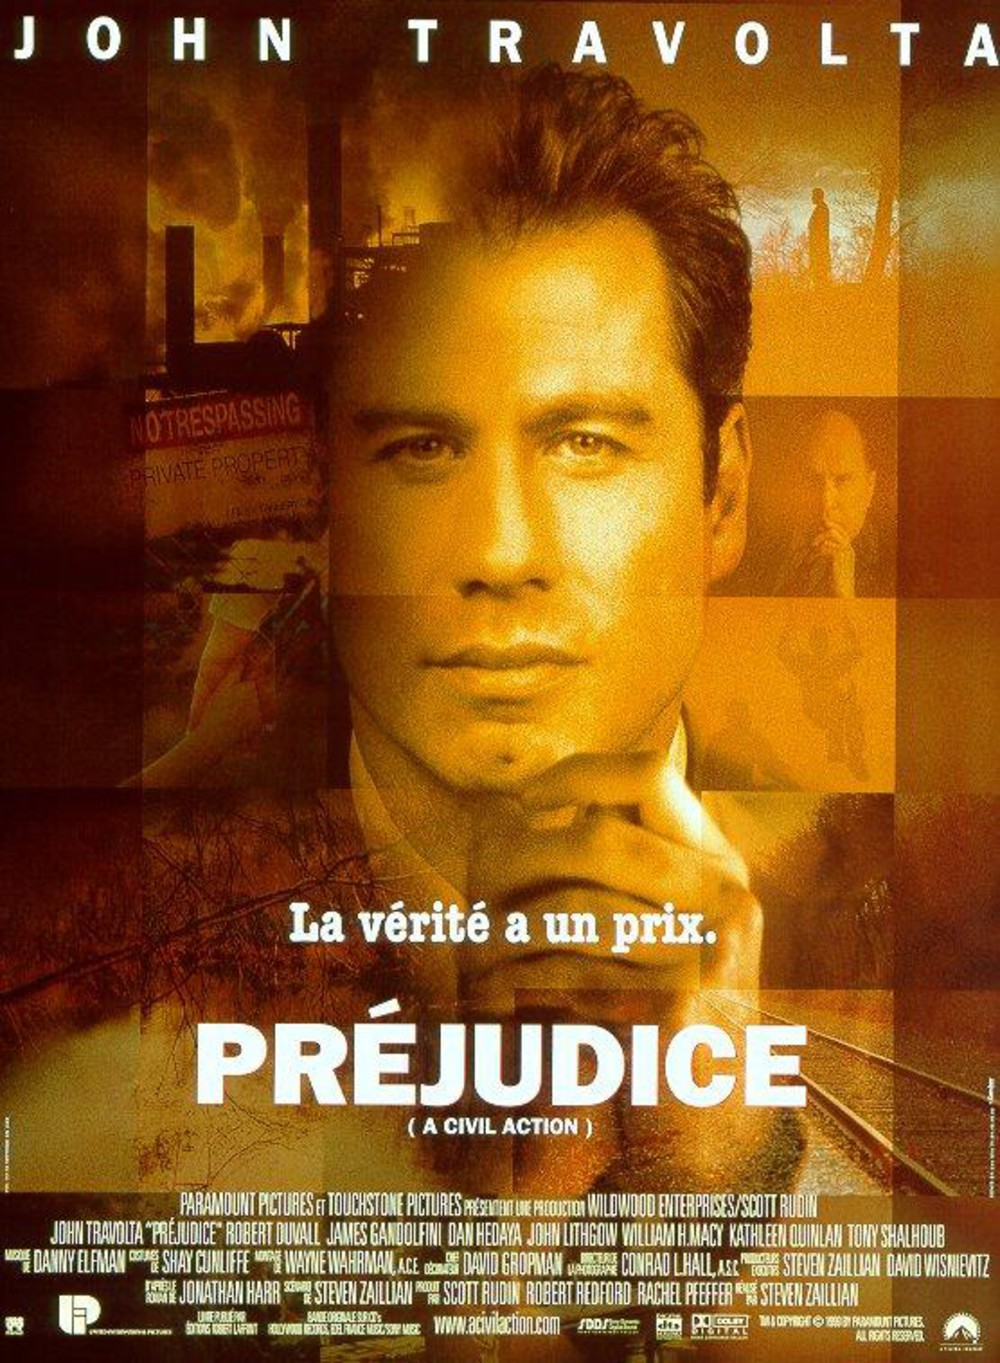 prejudice Disney touchstone affiche poster a civil action